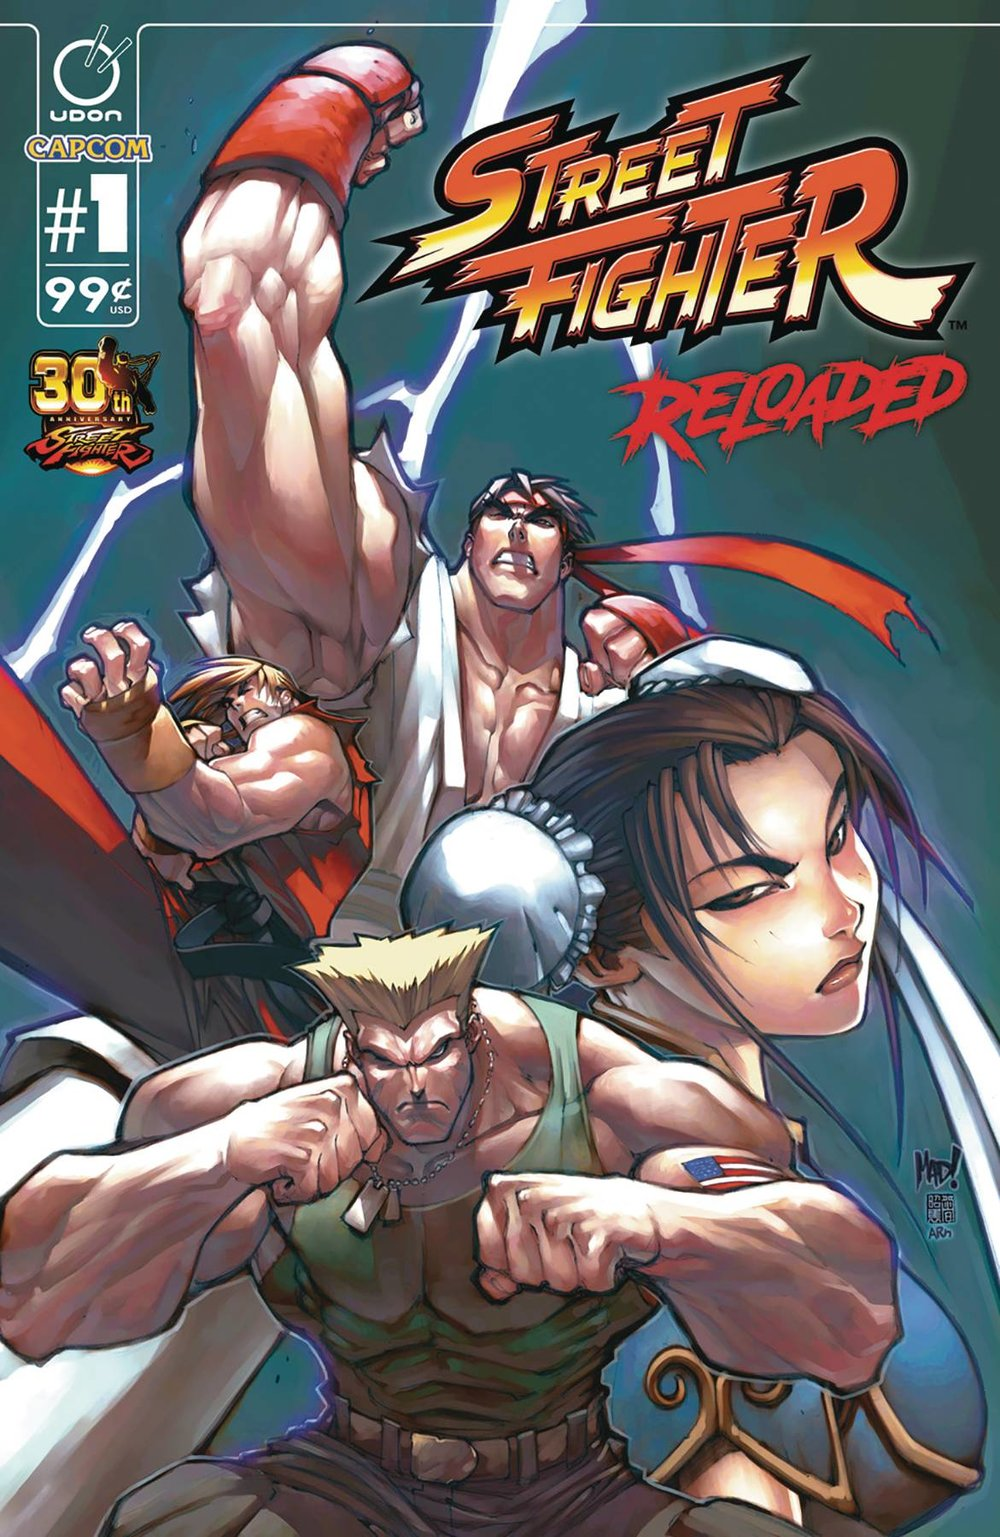 STREET FIGHTER RELOADED 1 of 6.jpg